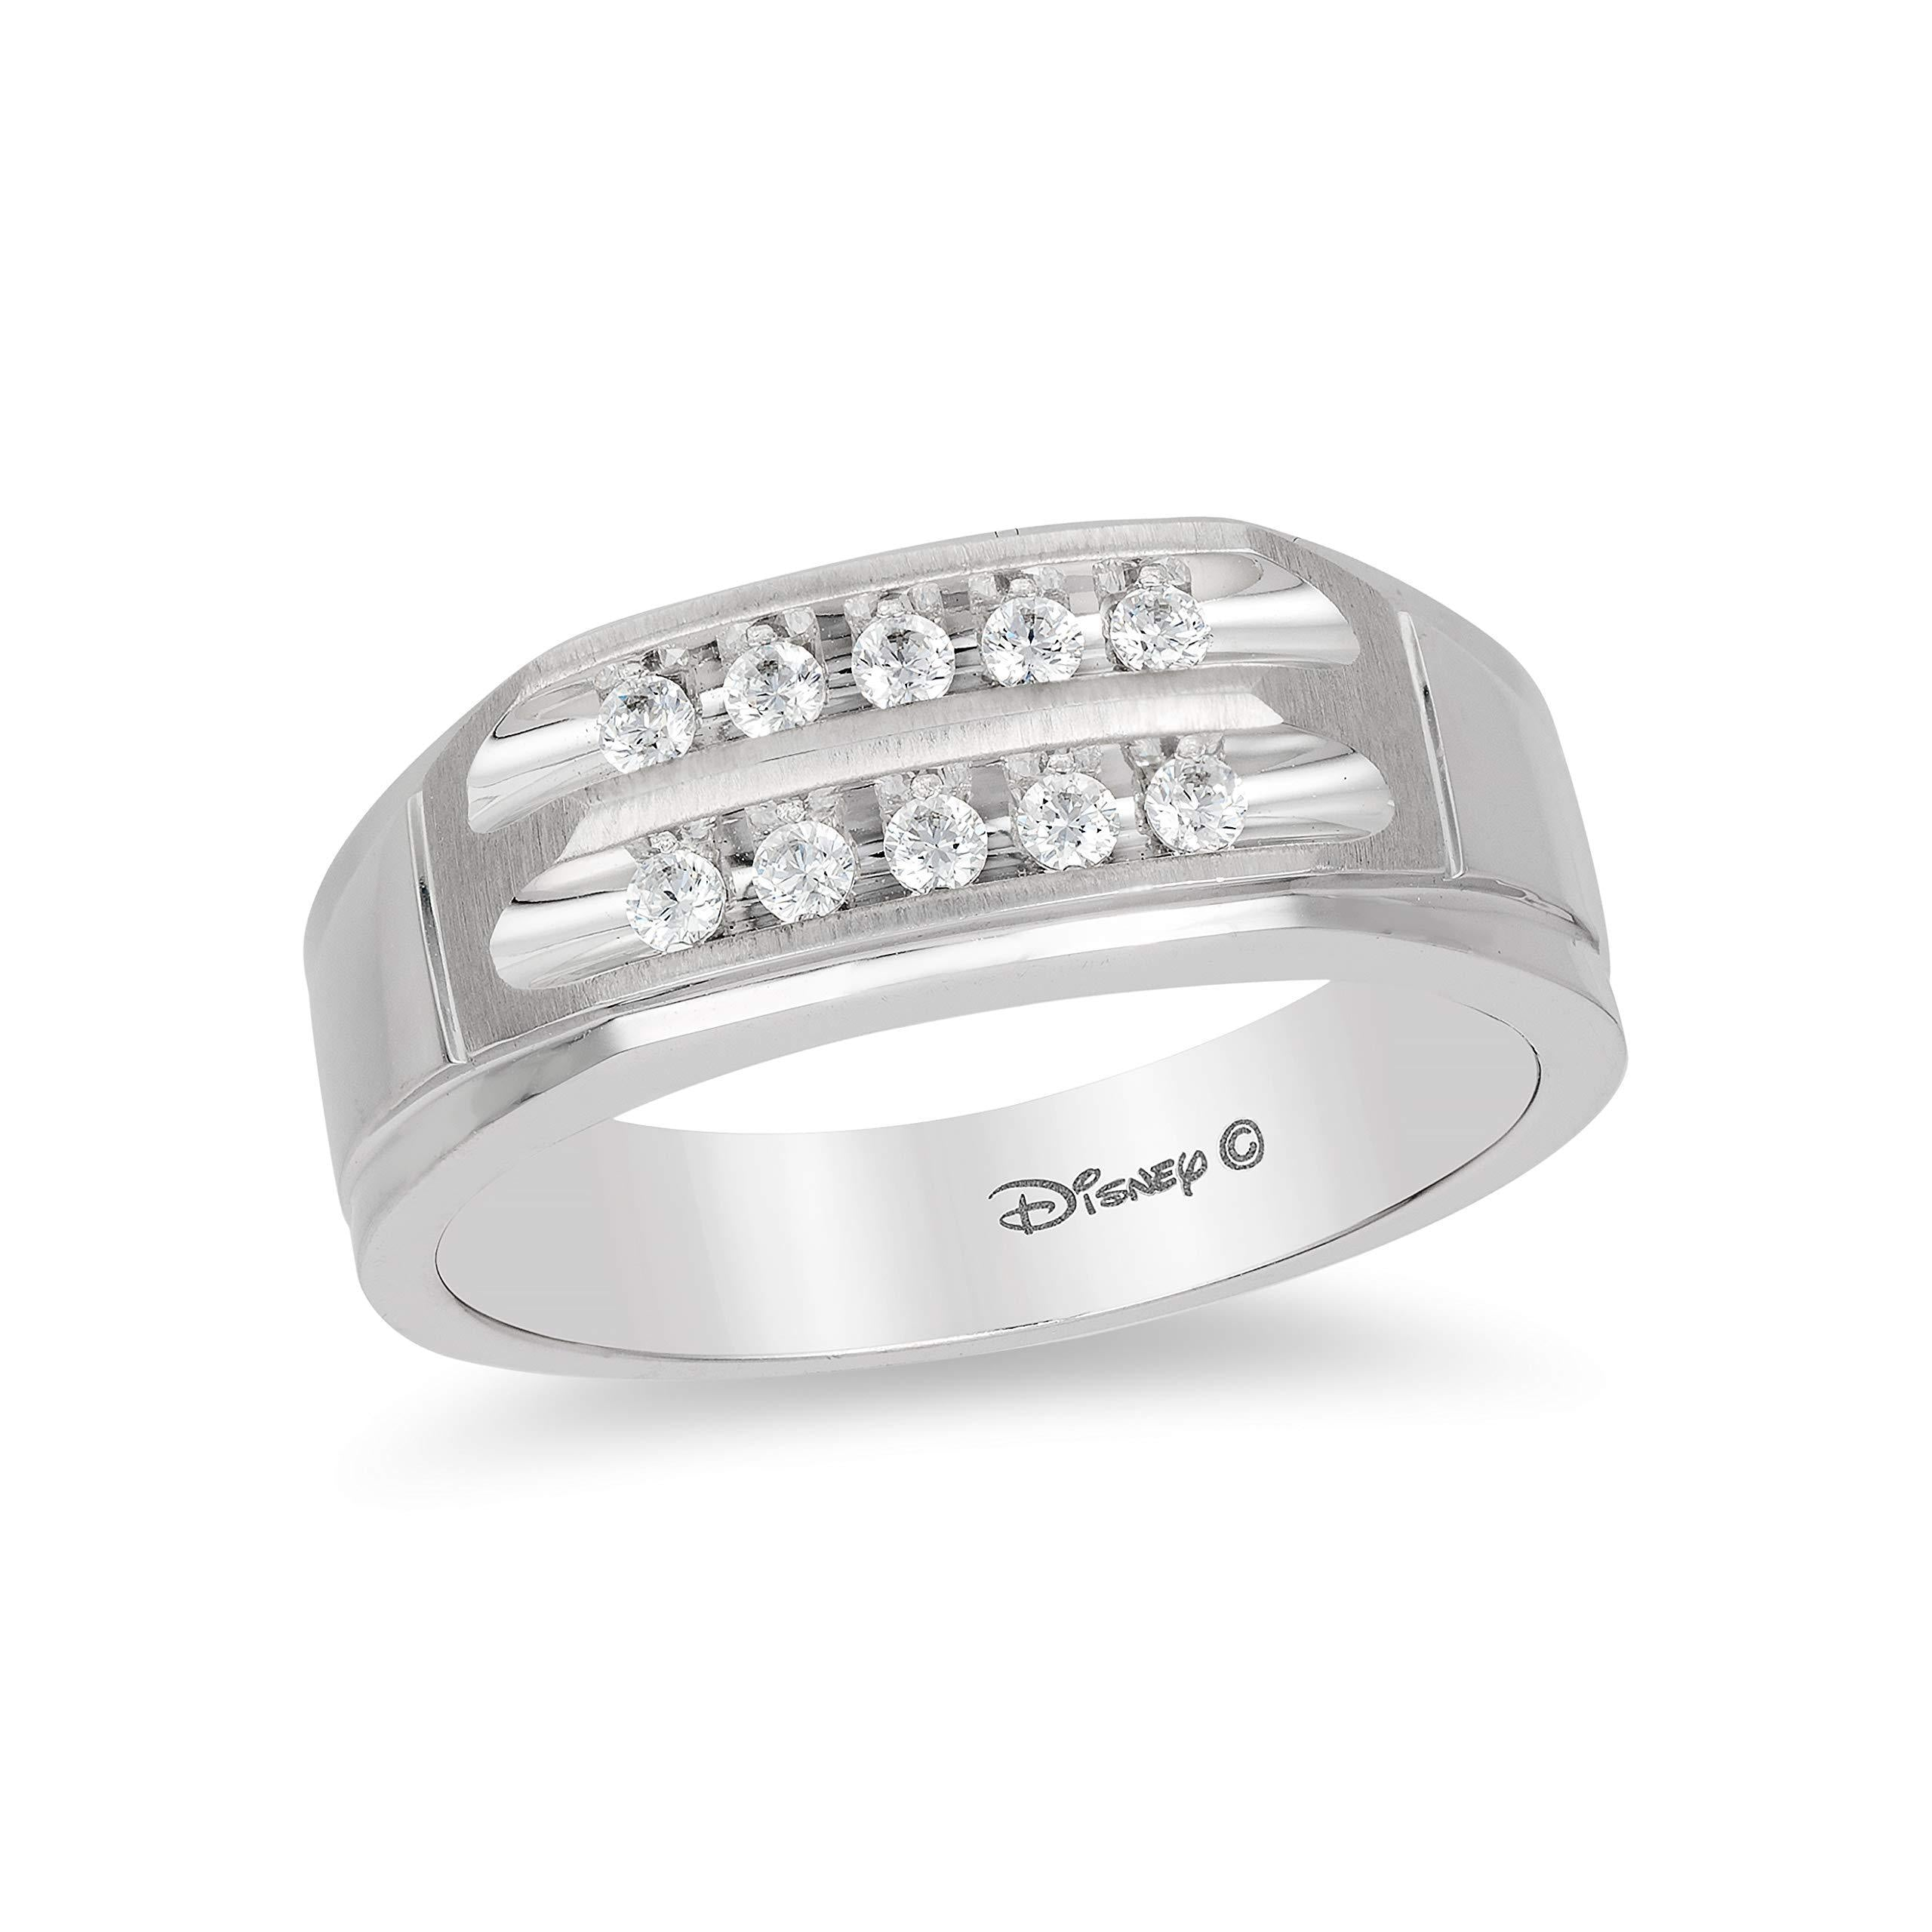 enchanted_disney-prince_fine_jewelry_14k_white_gold_0_25_cttw_mens_ring-14k_white_gold_0.25CTTW_1